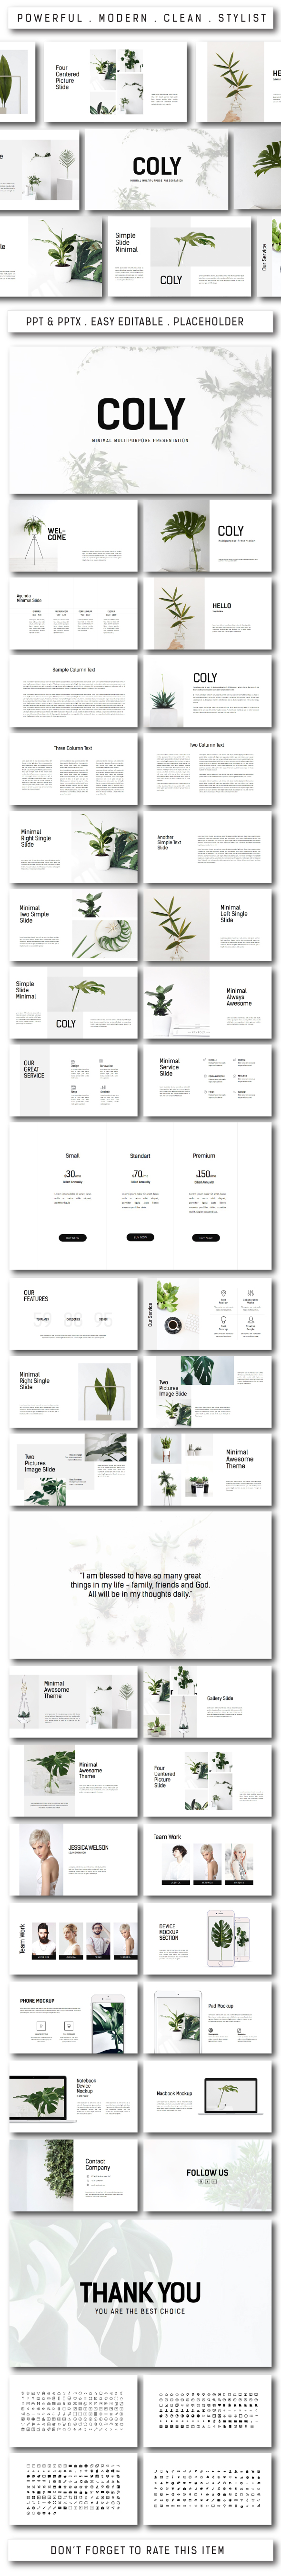 Coly Multipurpose Powerpoint - PowerPoint Templates Presentation Templates